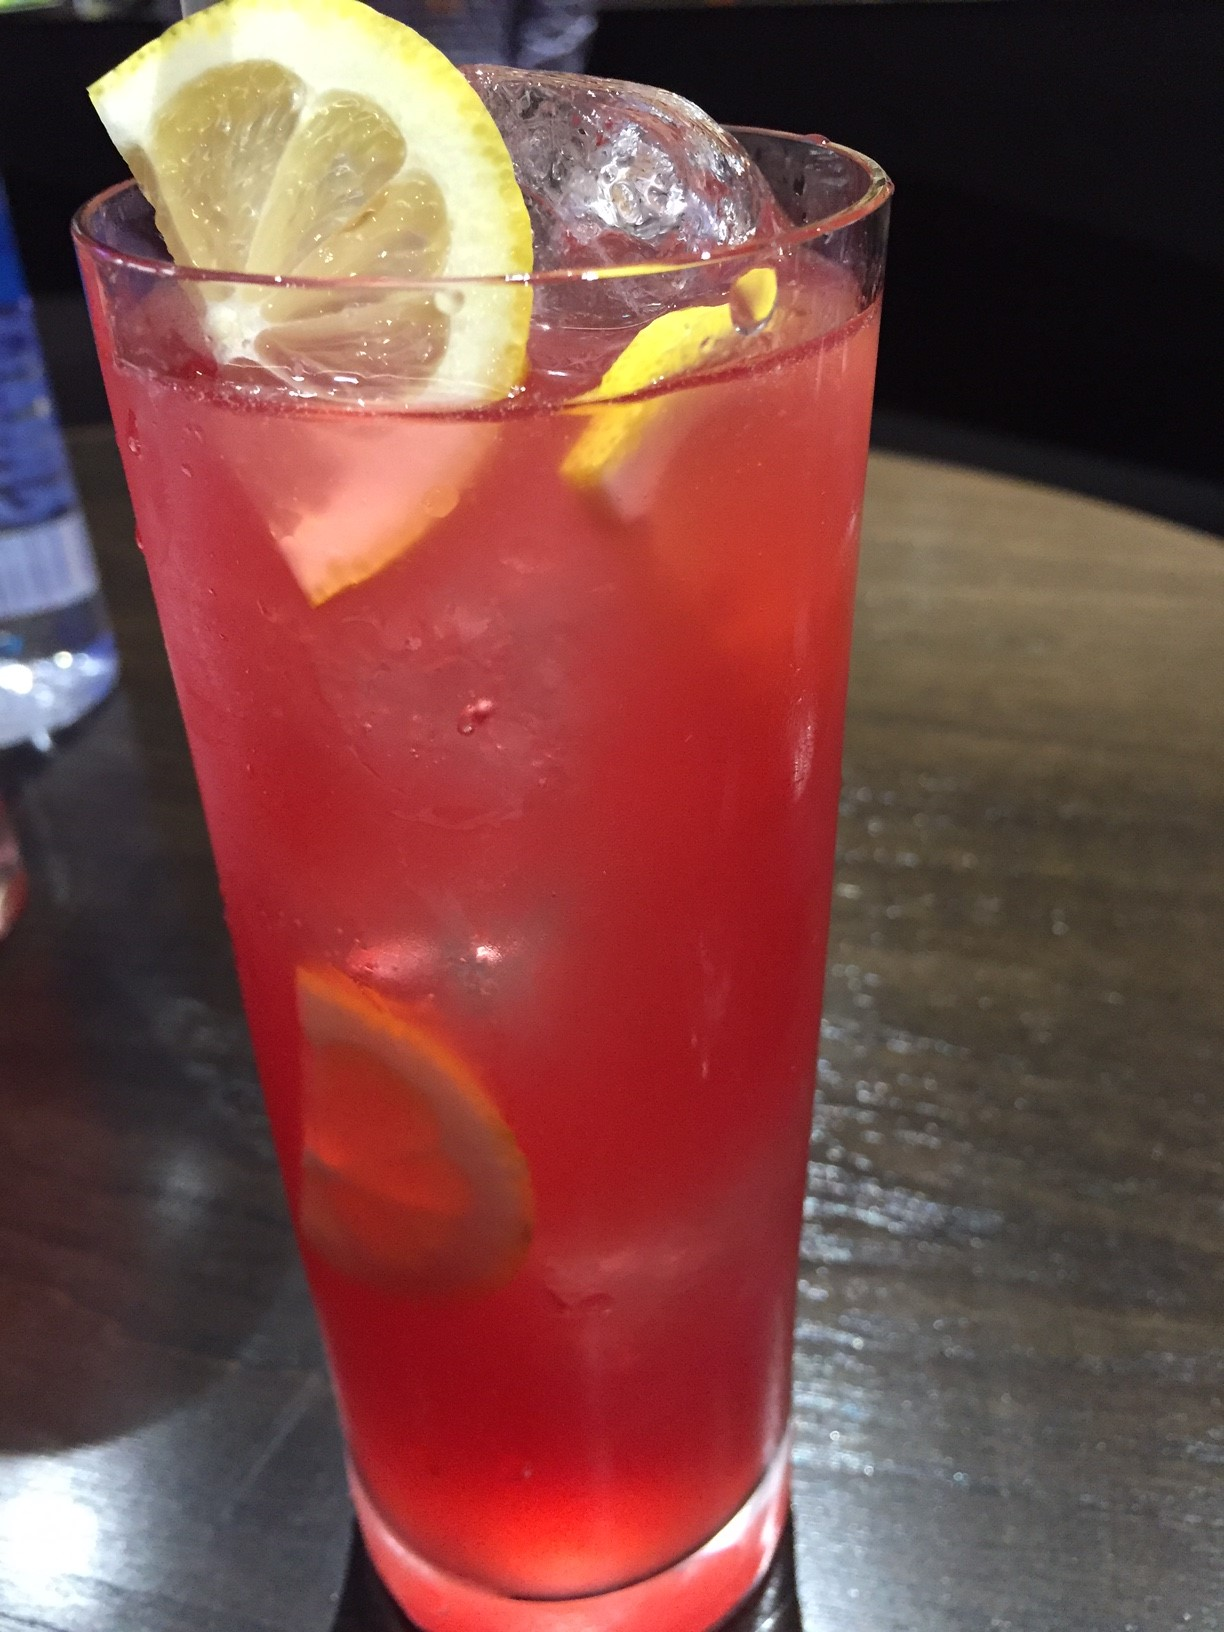 The signature Atomic Fizz cocktail at T-Mobile Arena. Photo by Kristine McKenzie.